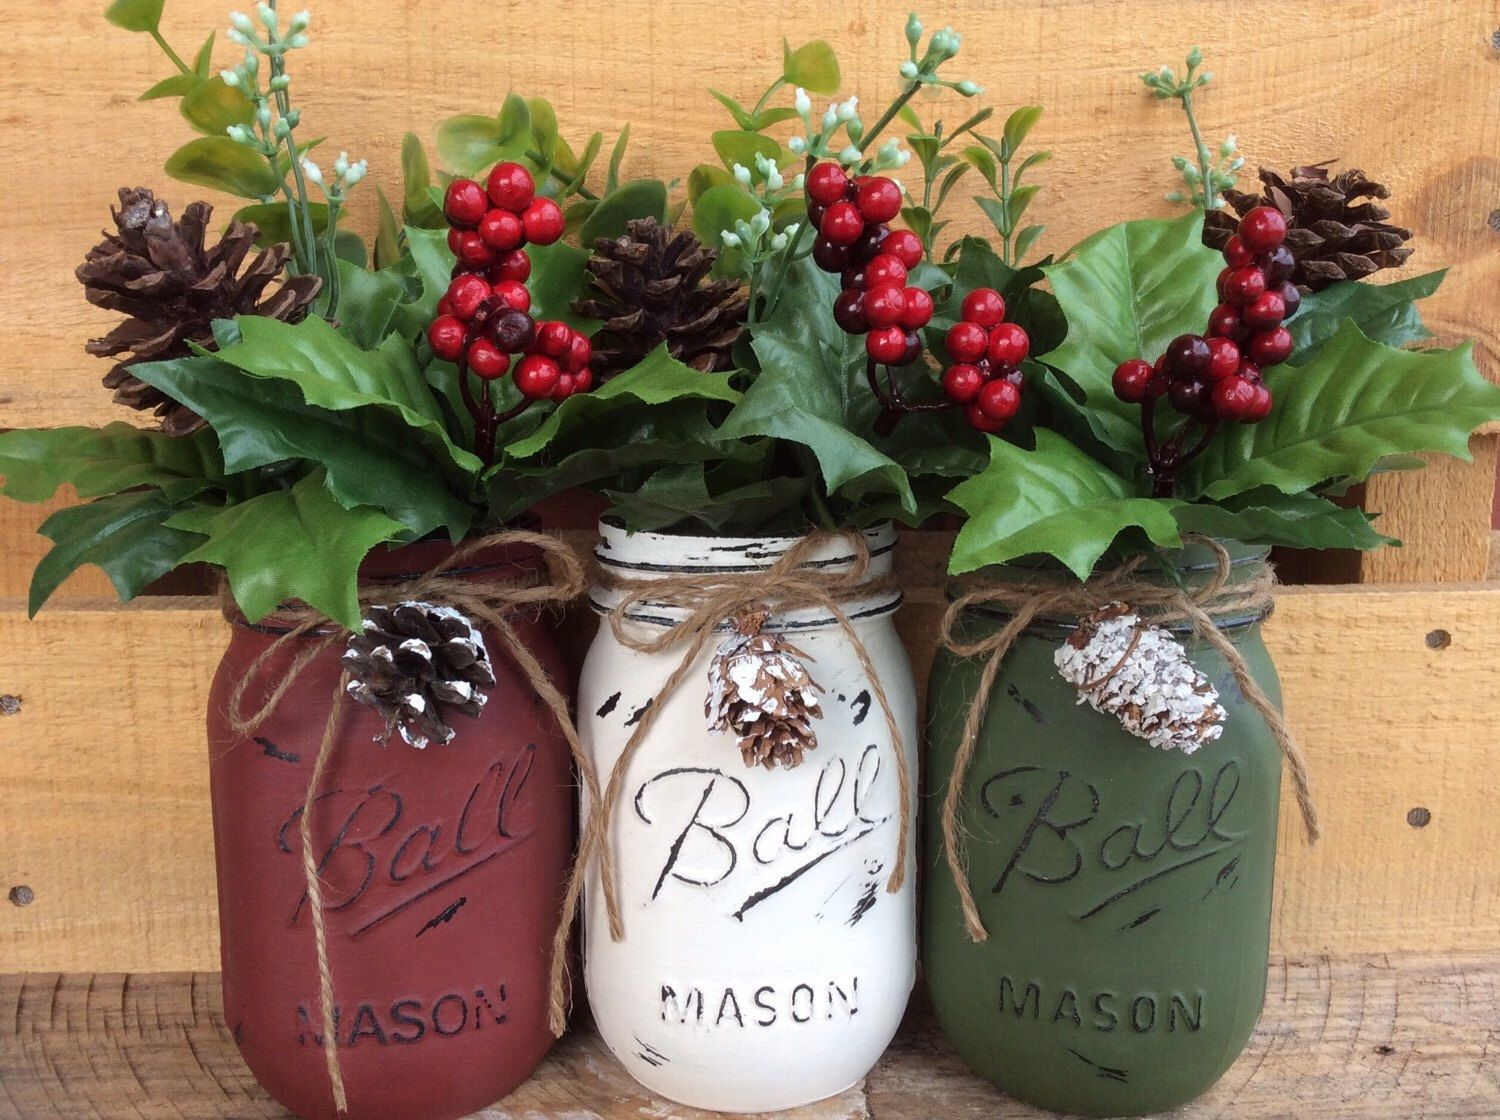 painted mason jars christmas decor vase home decor holiday decor rustic